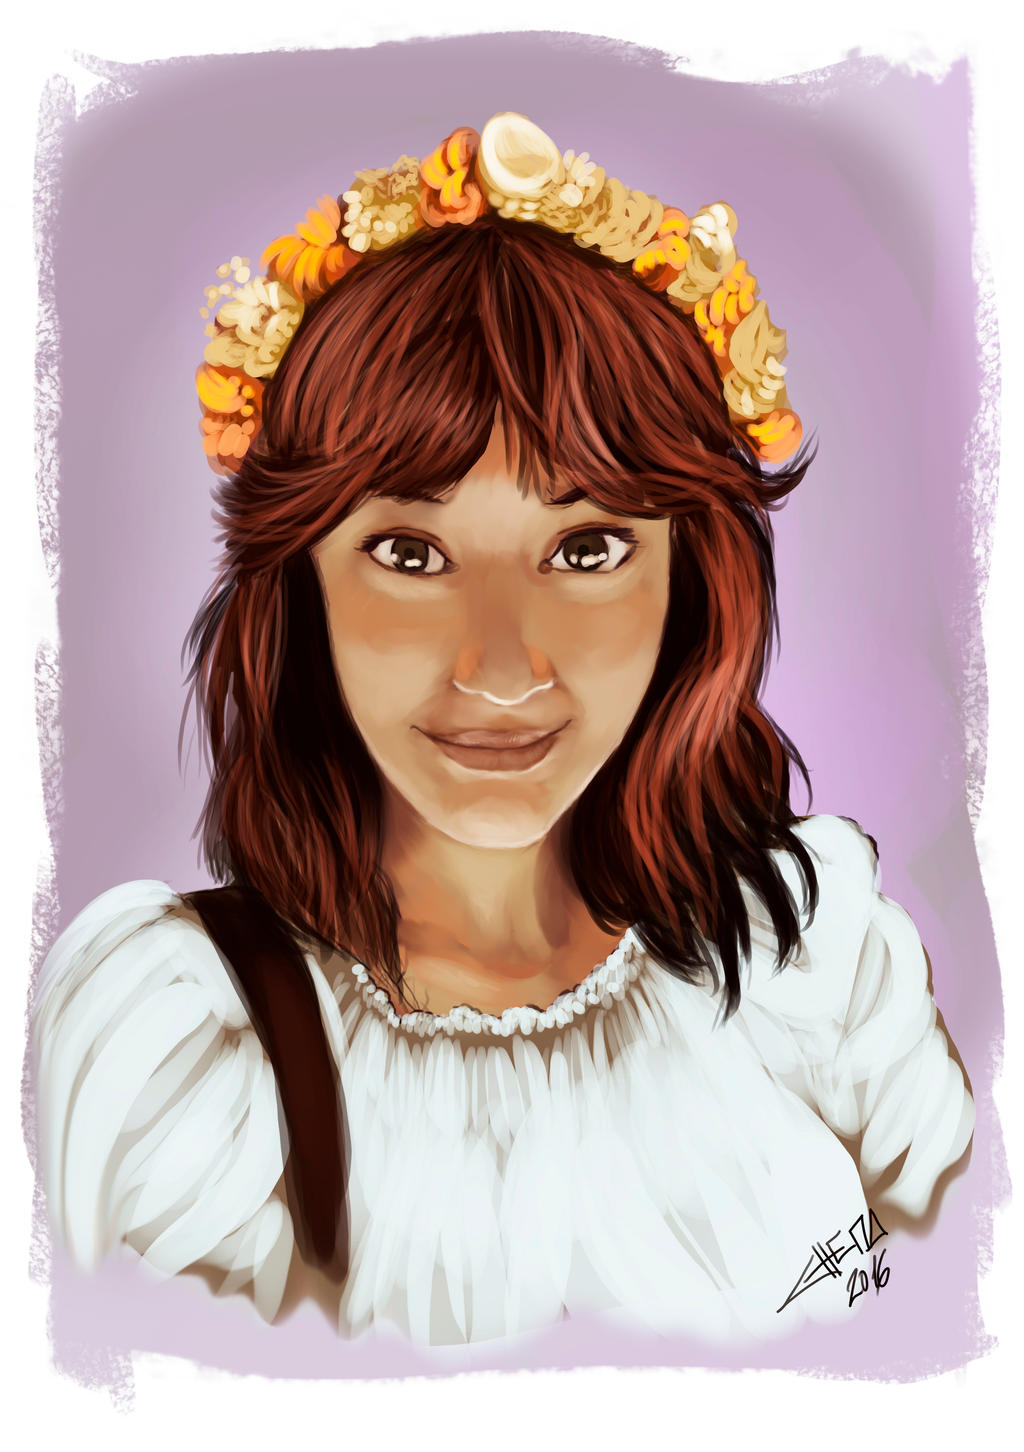 Fast Paint Portrait by ChemaIllustration